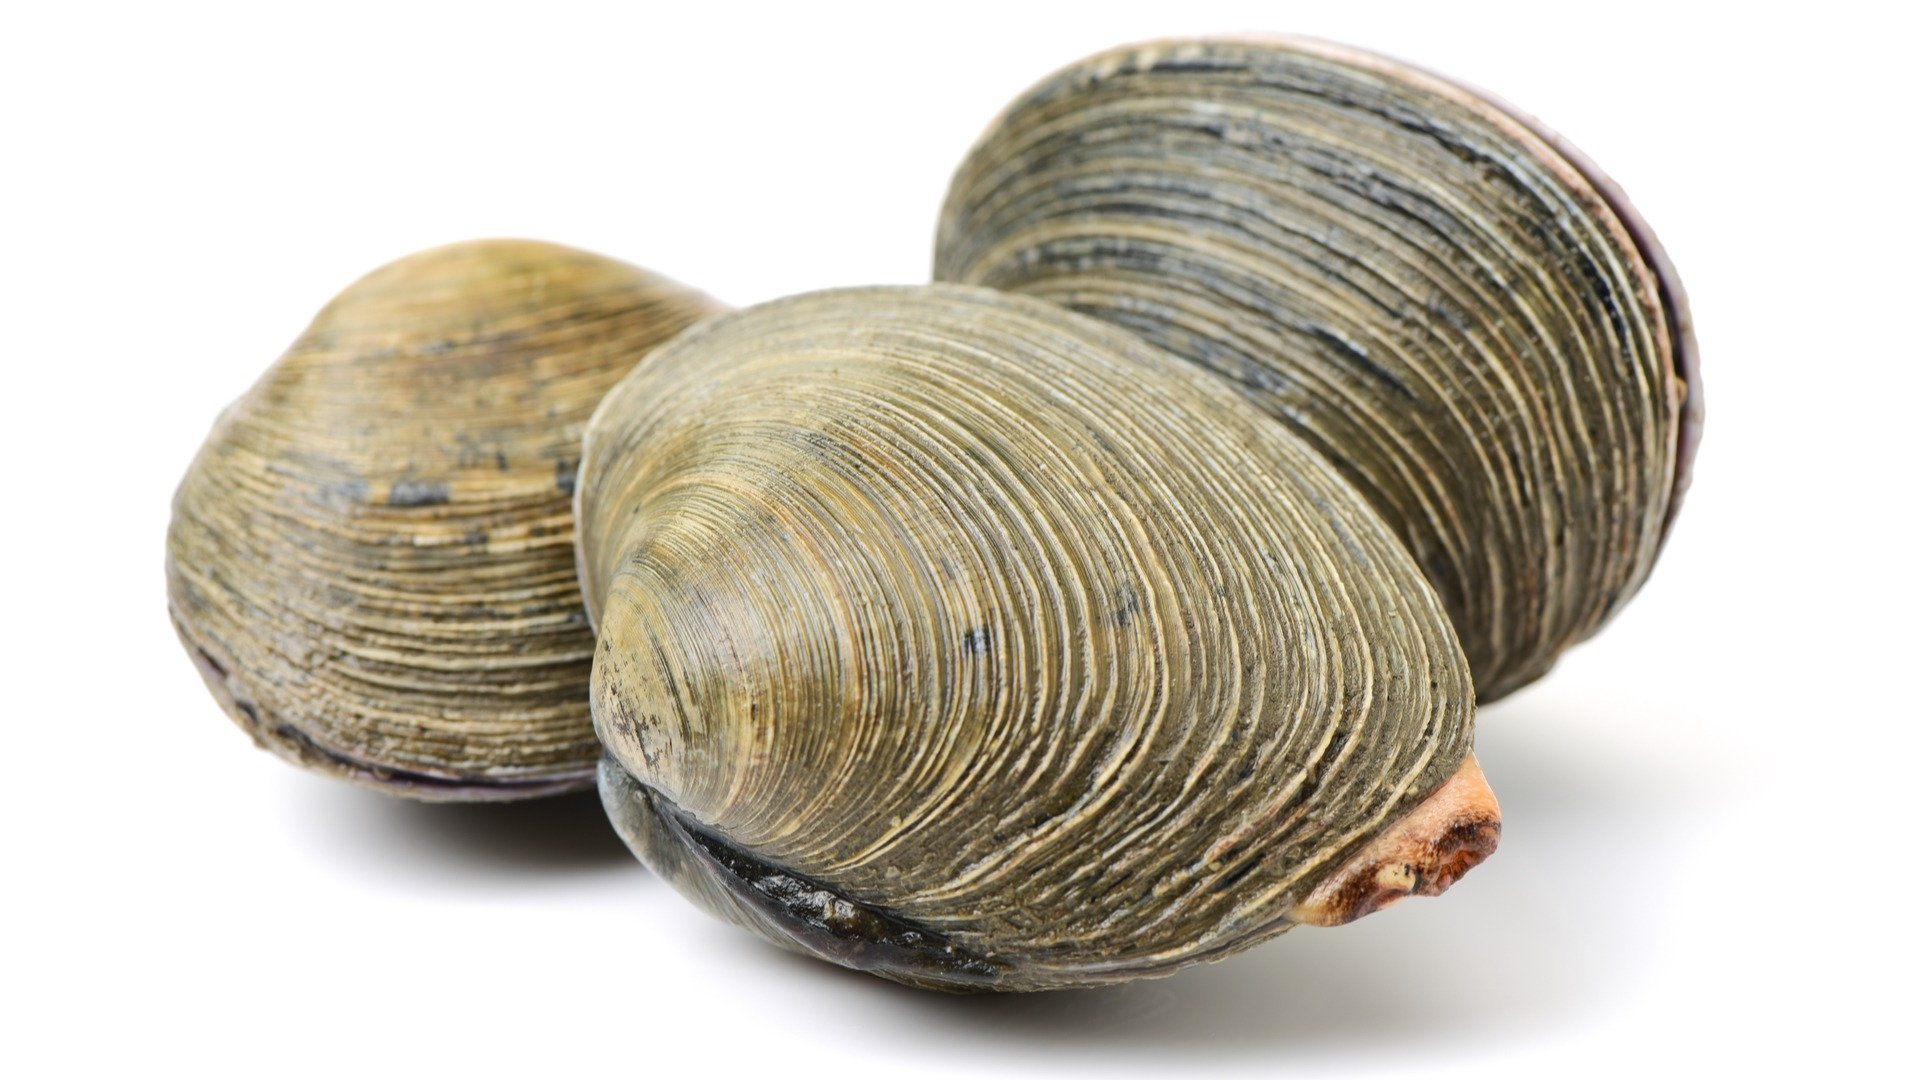 clam, seafood, mollusc, shell, ocean